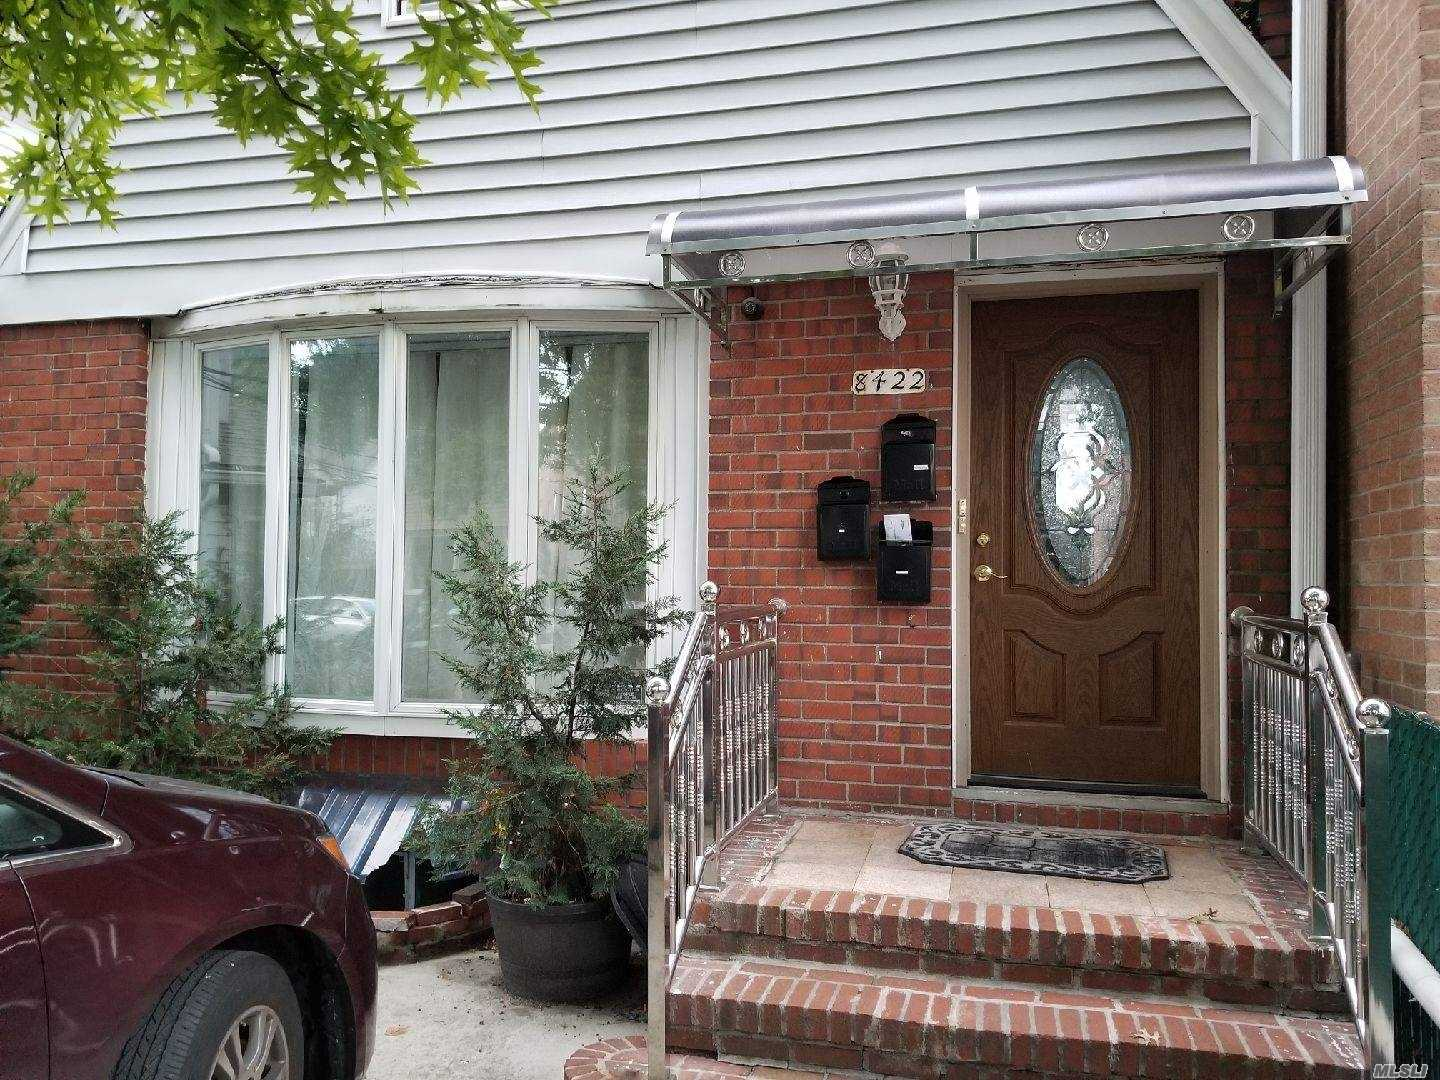 Beautiful Apartment Located In The Heart Of Queens. Specious Bed Rooms With Wooden Floor Throughout. Completely Remodeled Bathroom & Kitchen Floor. Fairly New Appliances In The Kitchen. Very Quiet Neighborhood. Minutes Away From E, F Train & Q 54 Bus.